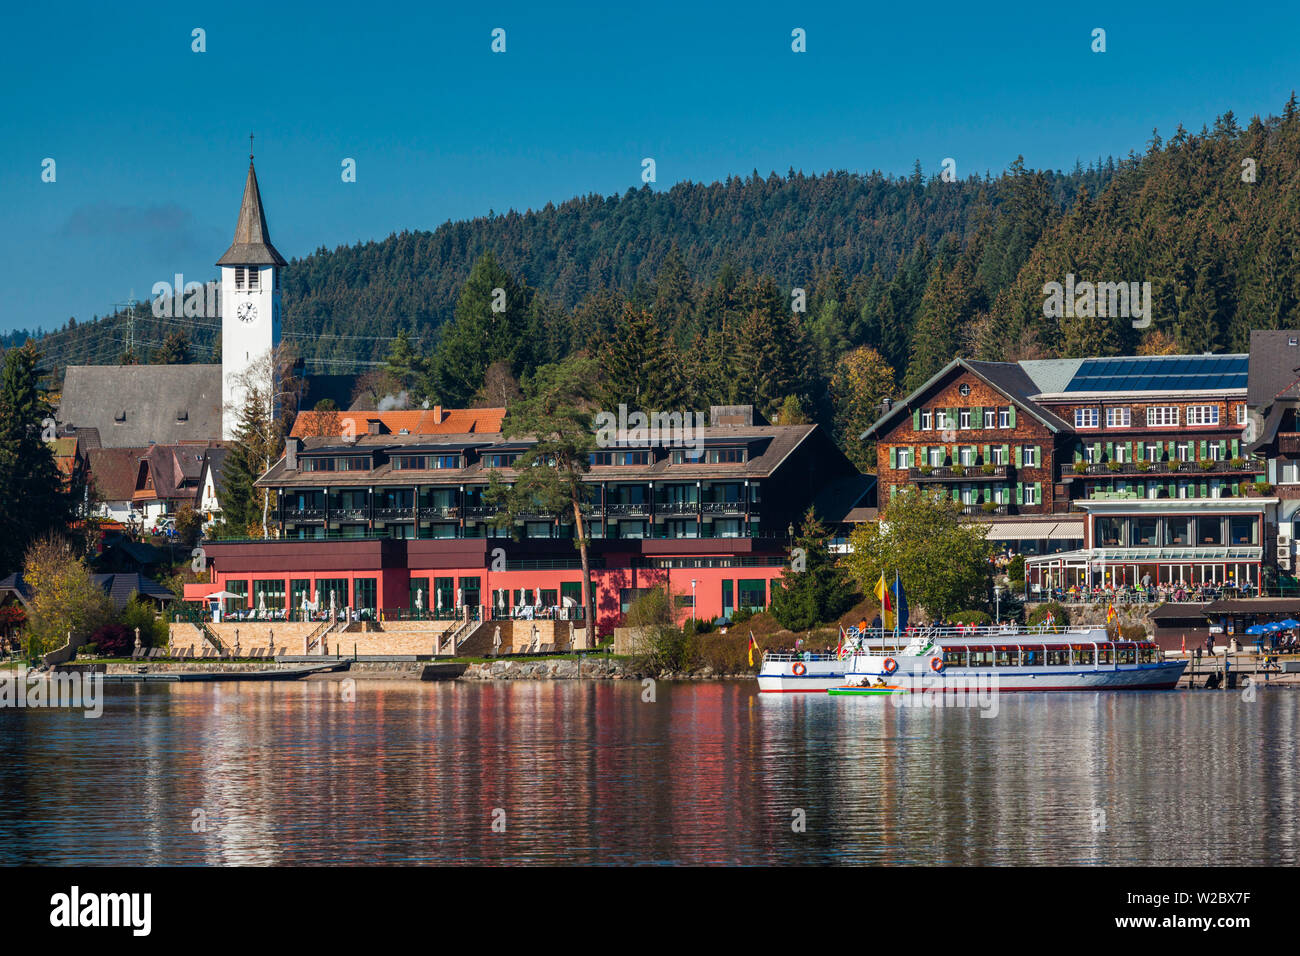 Titisee Neustadt Germany High Resolution Stock Photography And Images Alamy